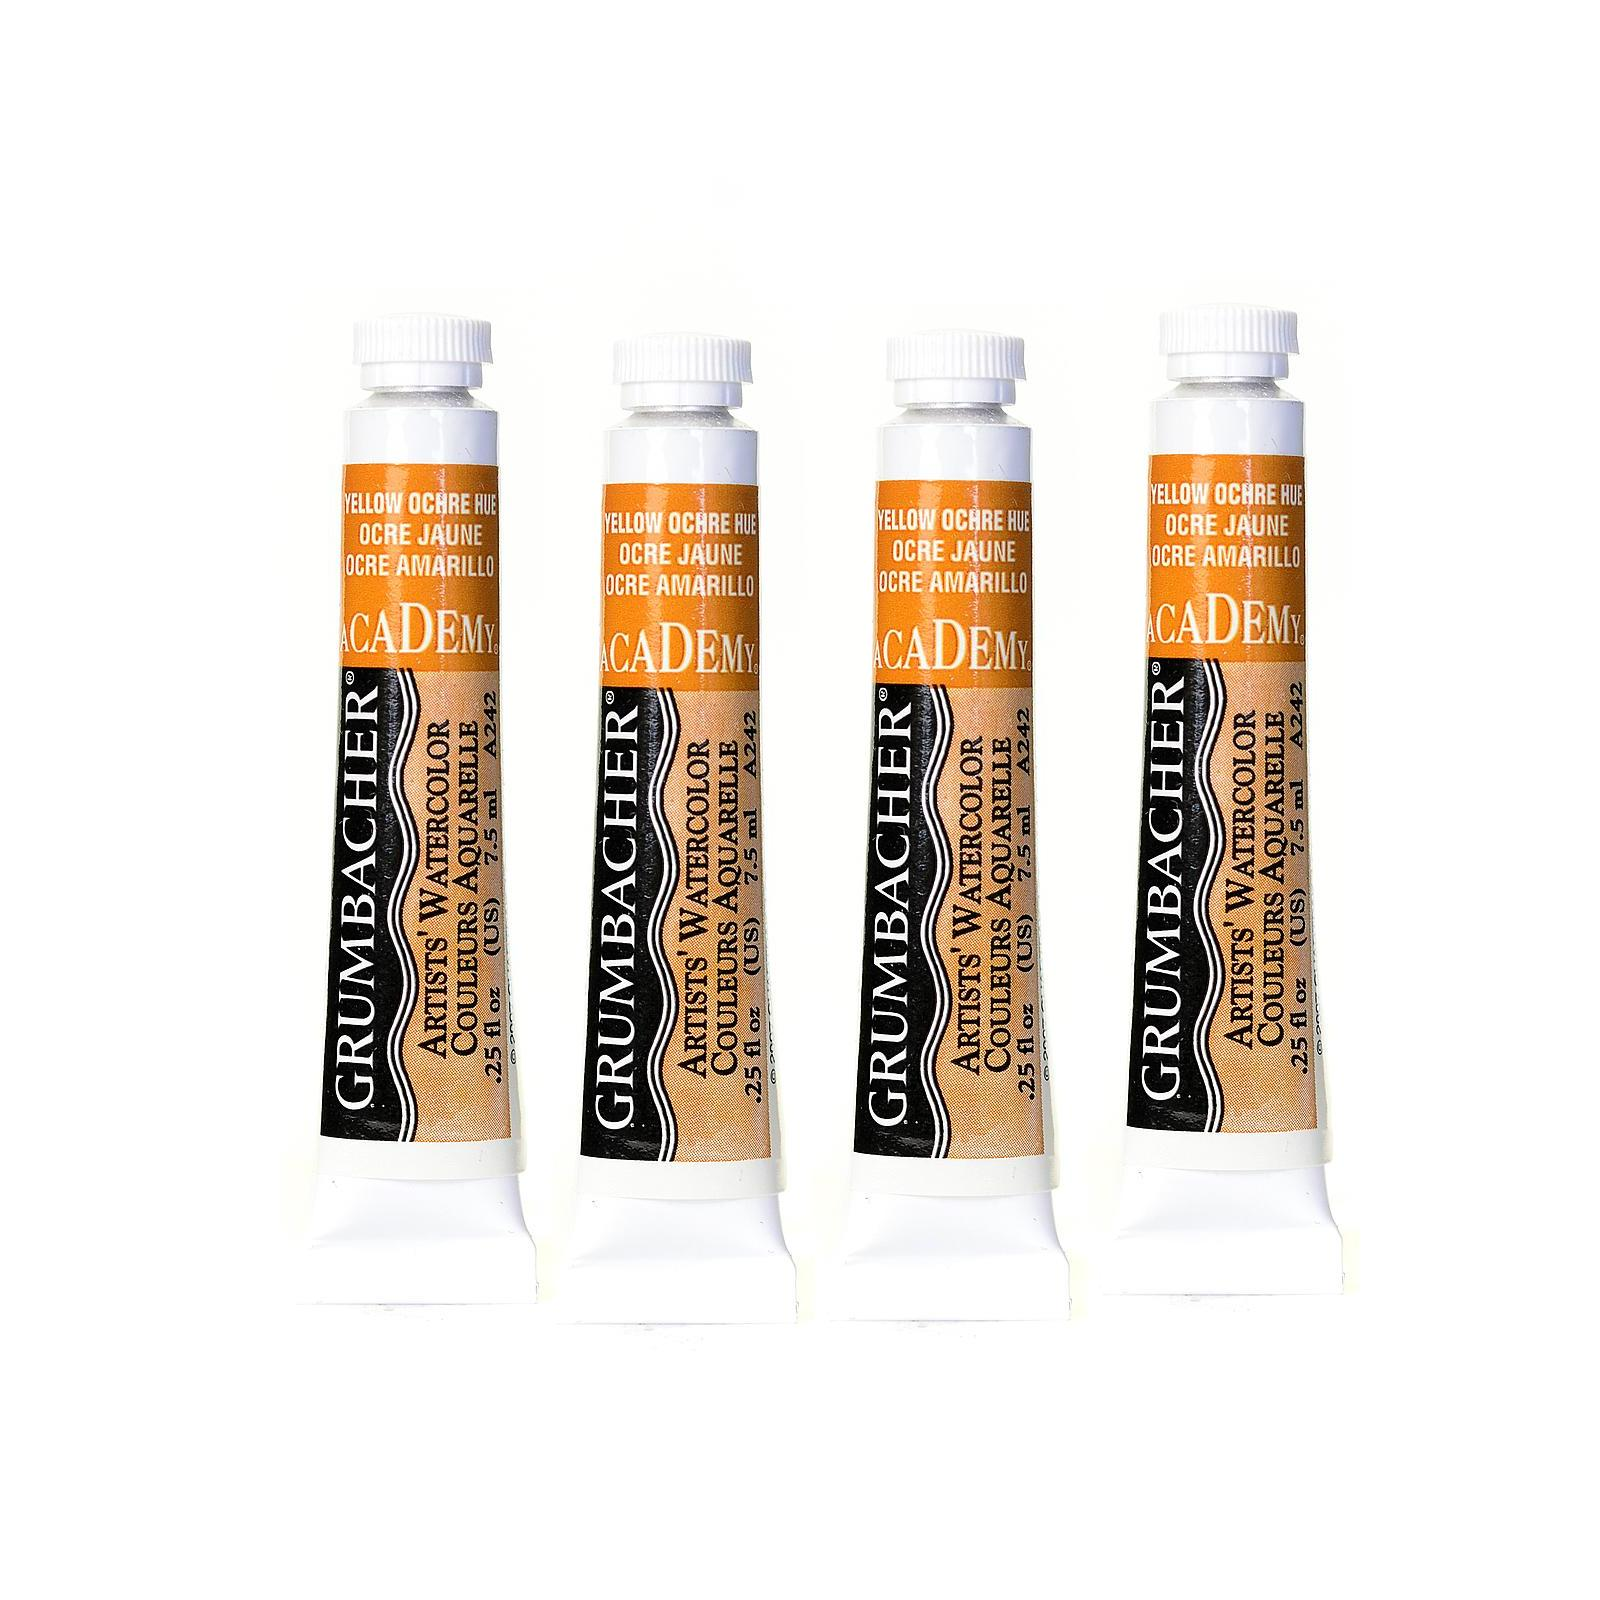 Academy Watercolors cadmium orange hue (pack of 4)